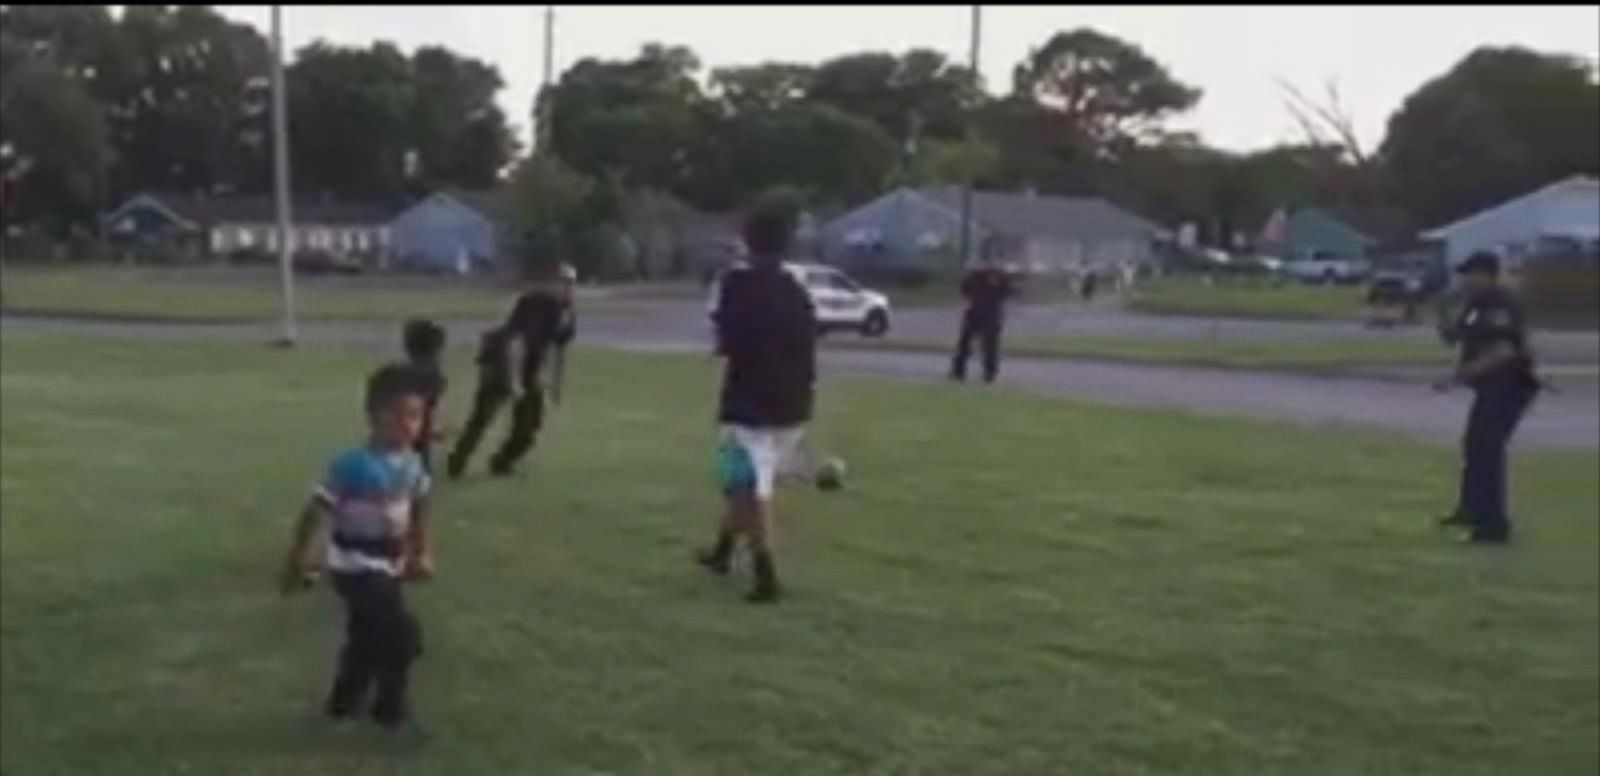 The Birmingham, Alabama, officers started a game of soccer with kids playing in a parking lot.